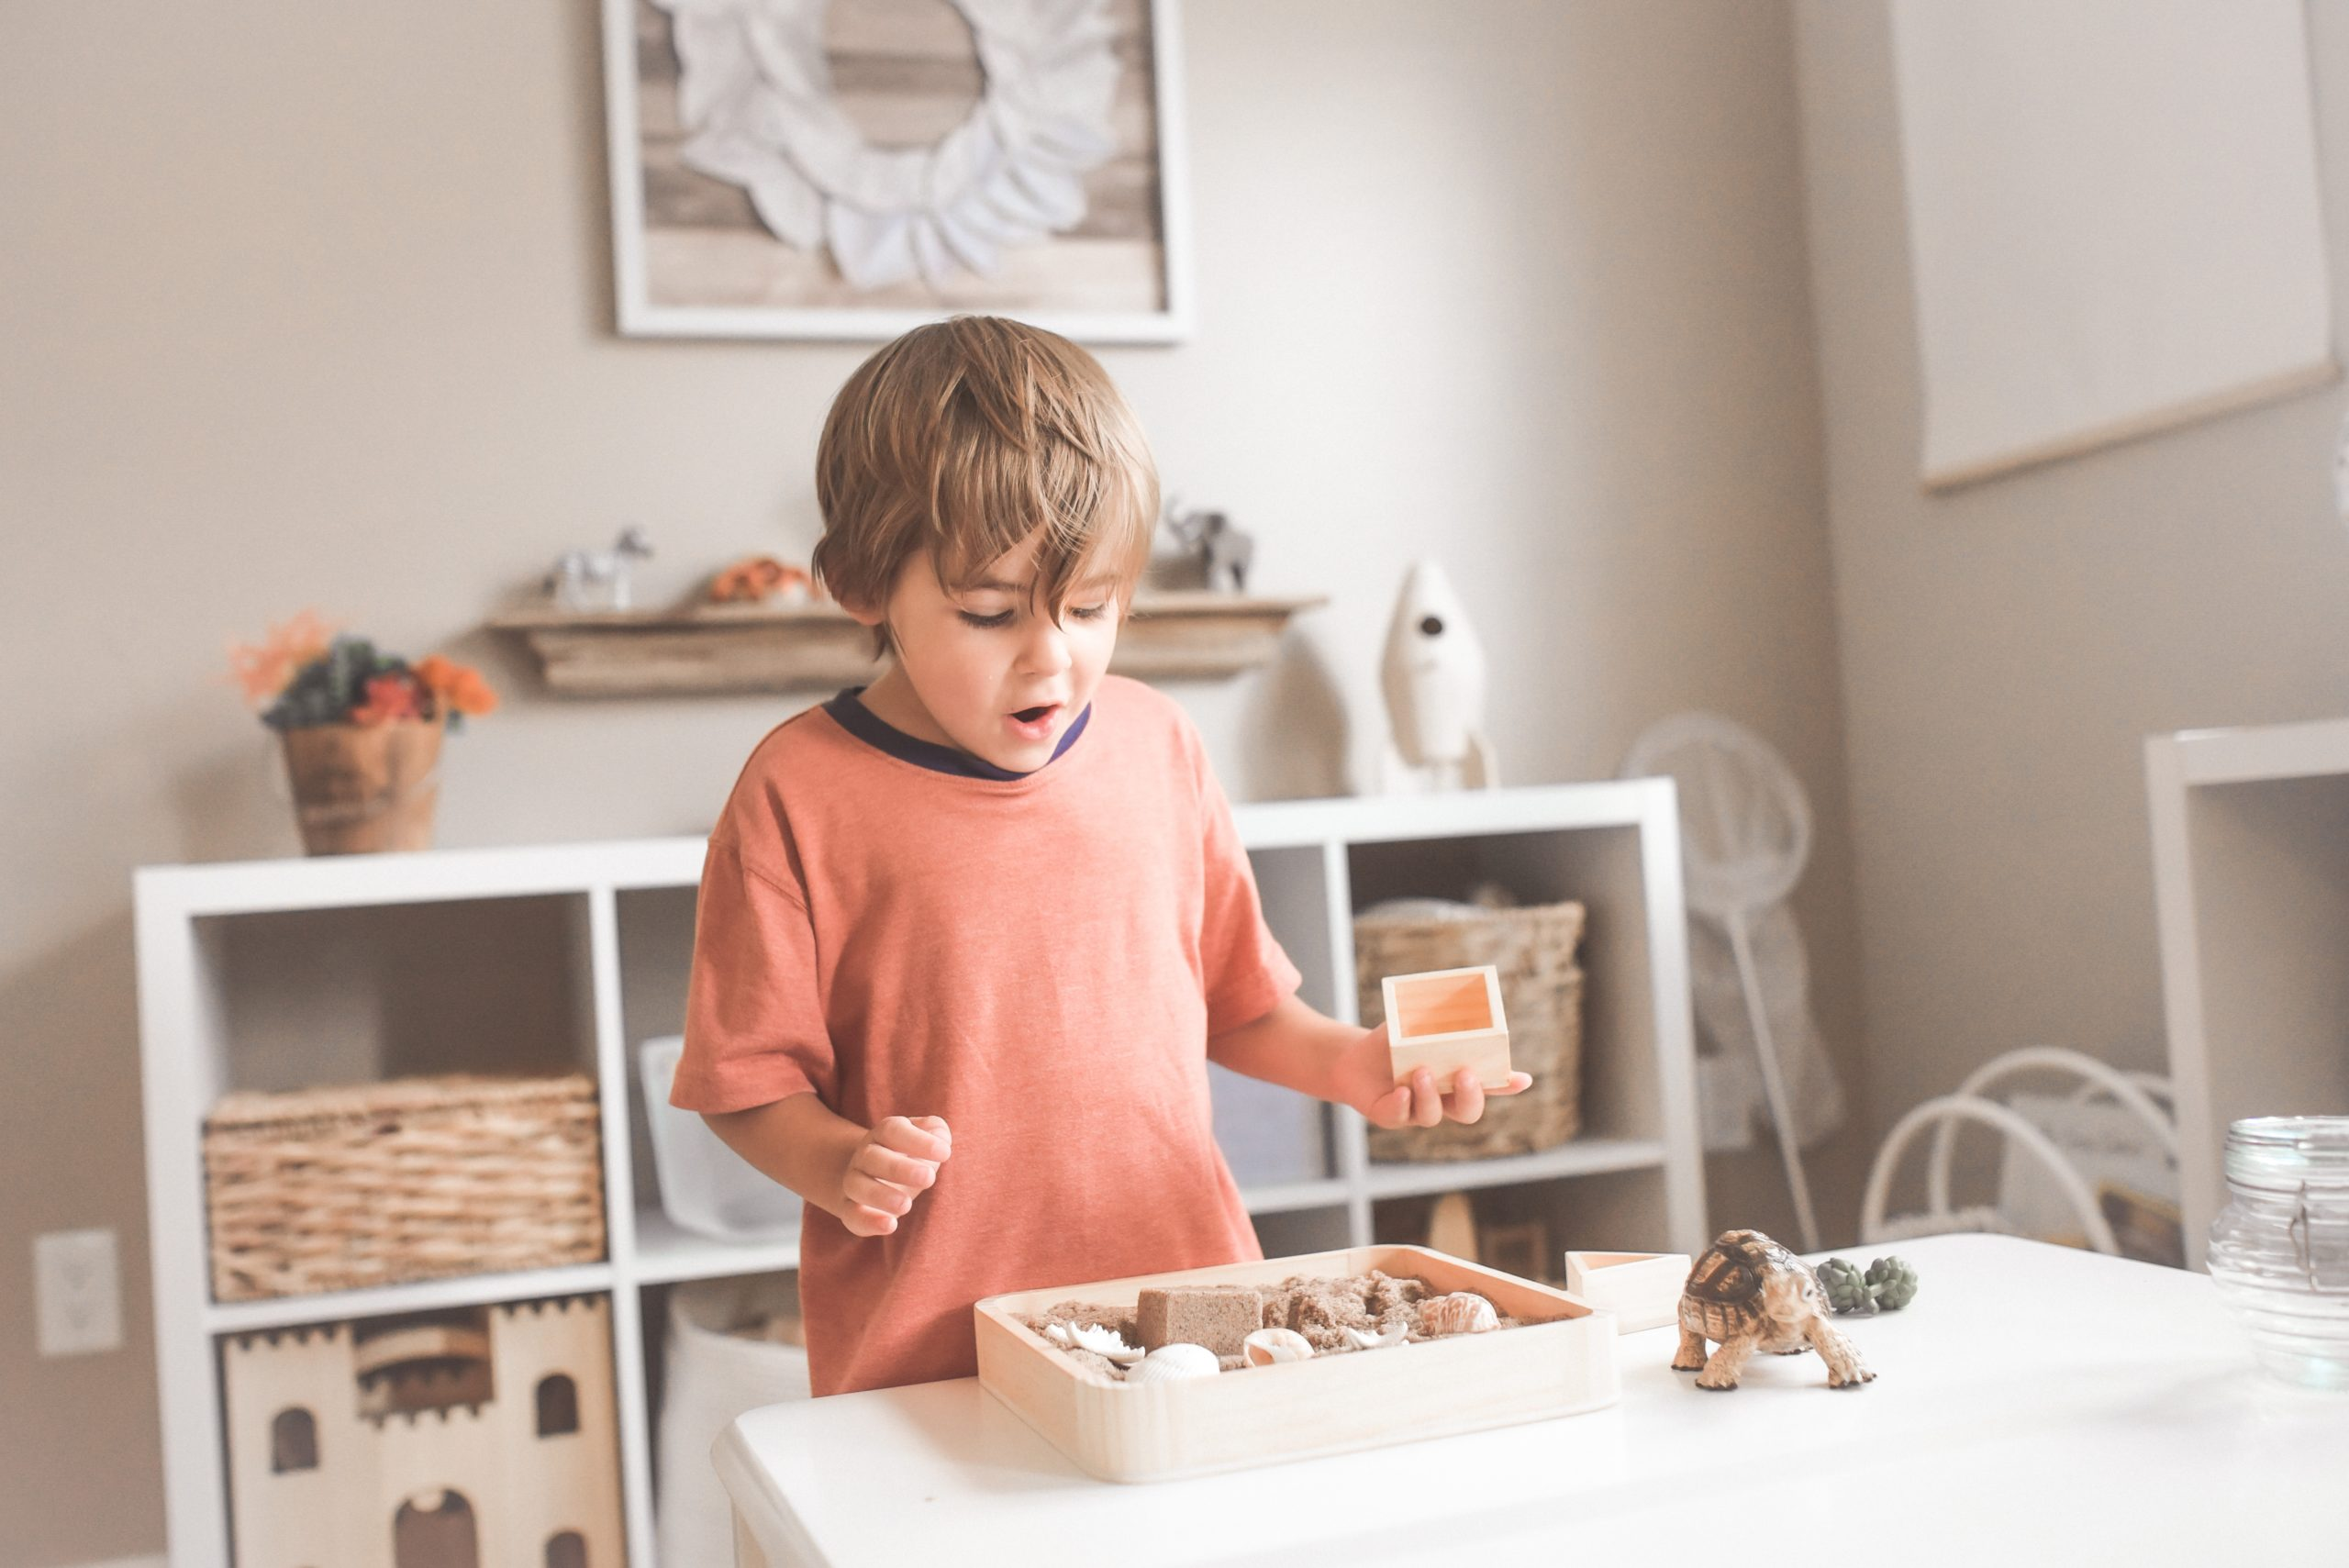 Child playing in room with toys